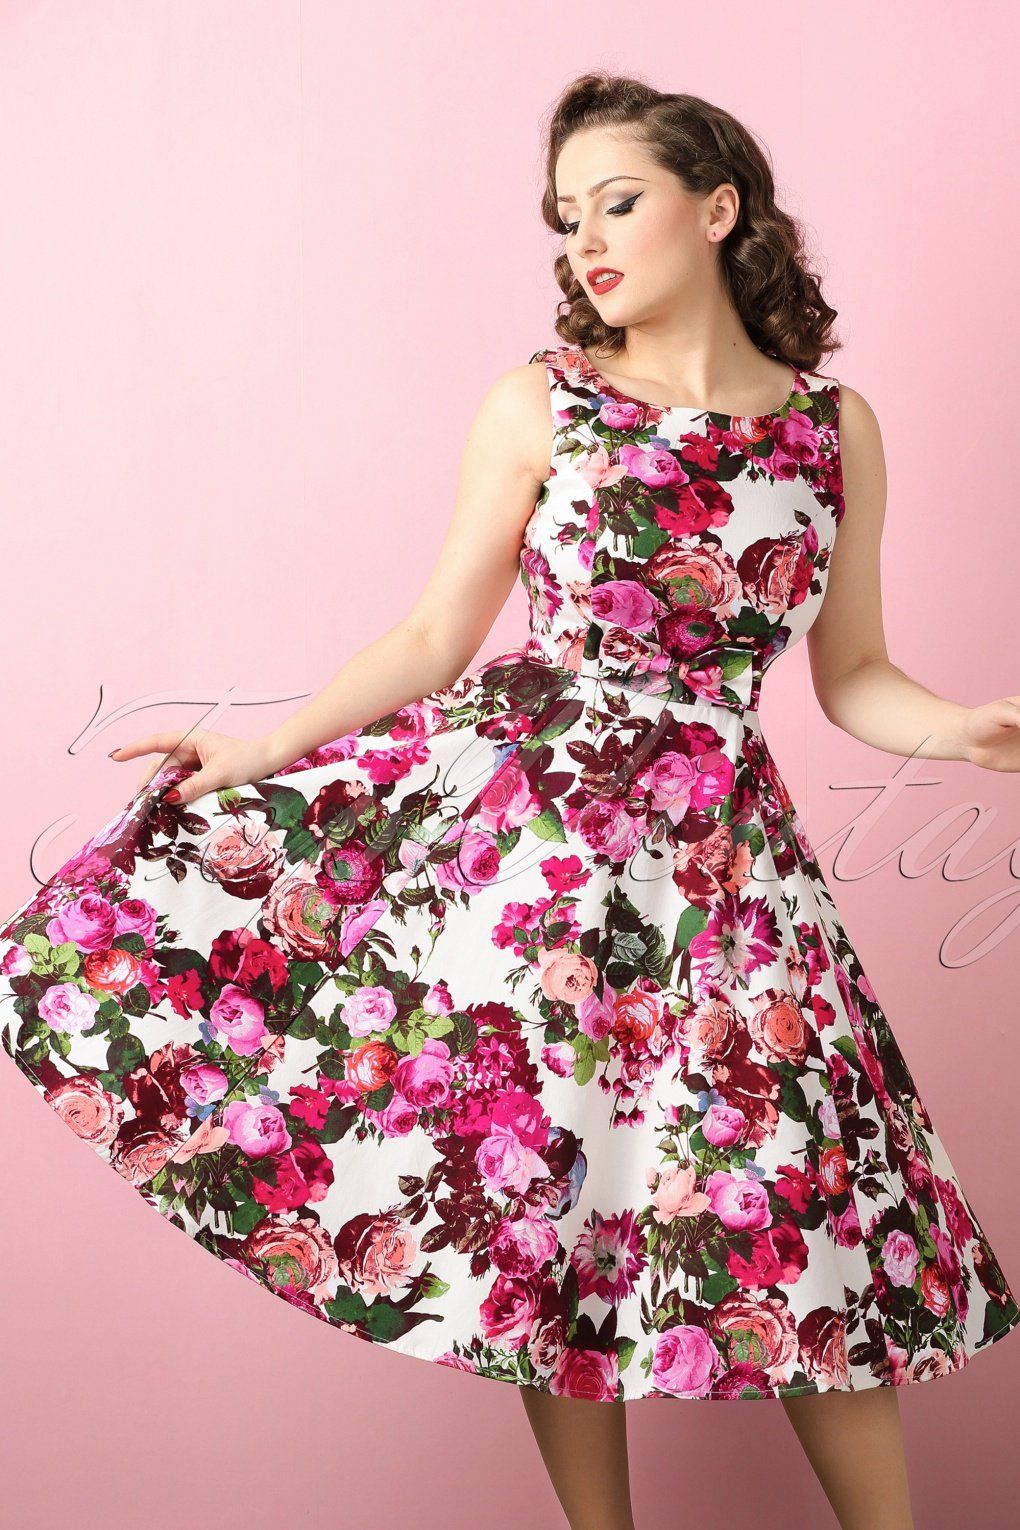 60ad6218c694 Vintage Style Dresses: 30s, 40s, 50s, and 60s | Vintage Inspired ...